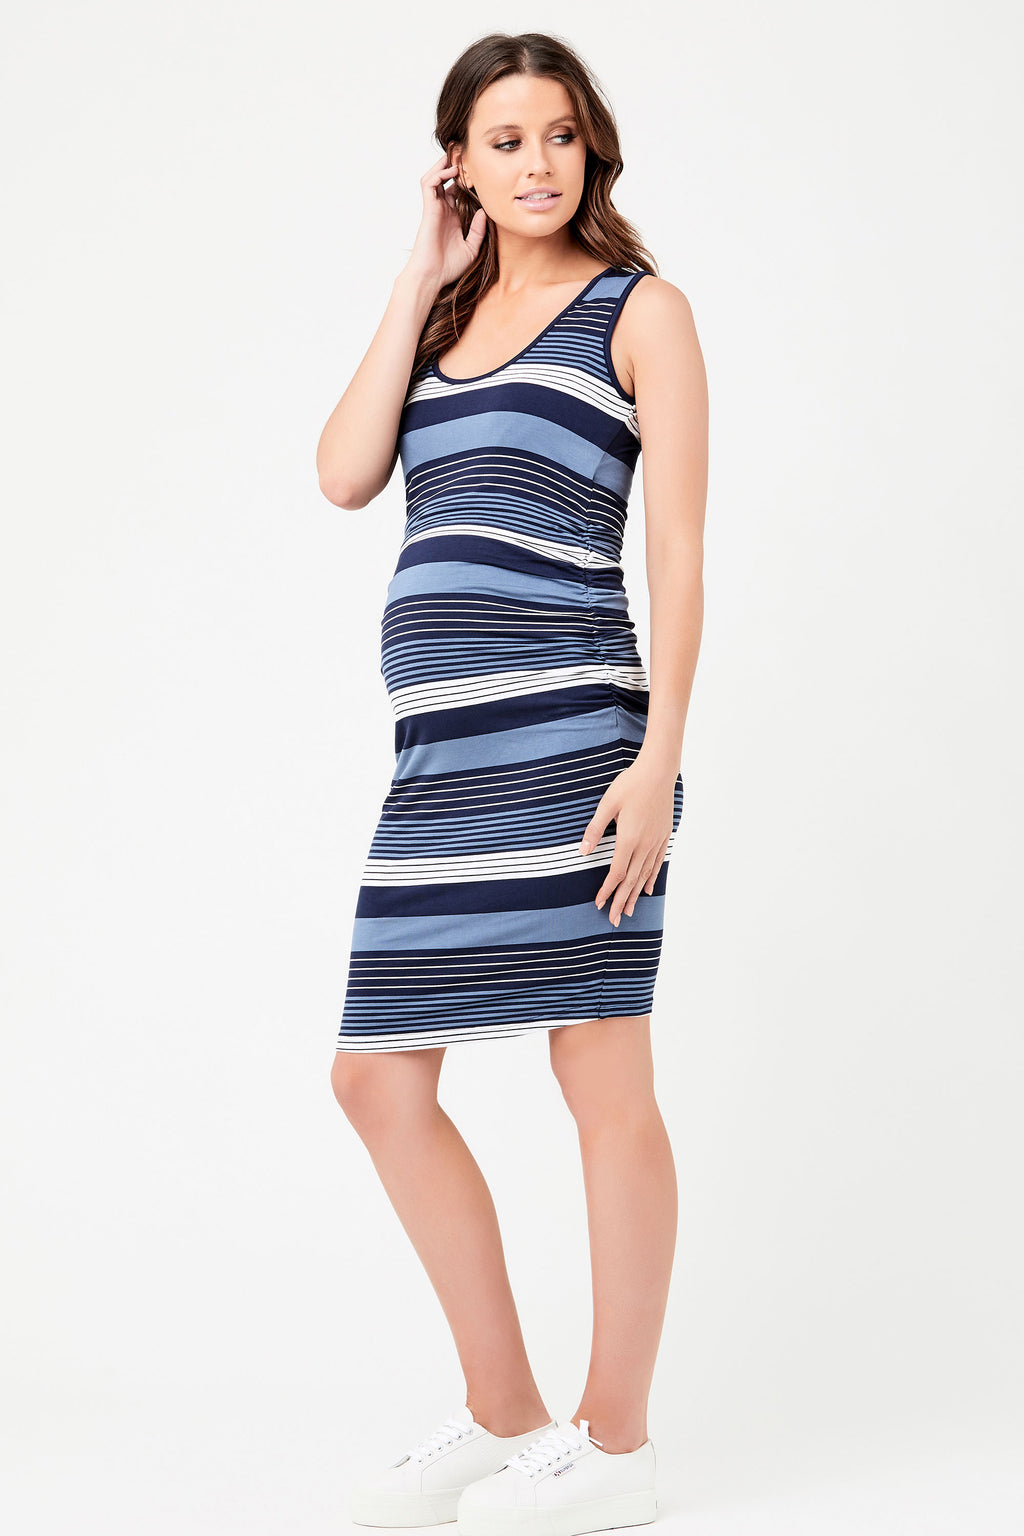 Ripe Georgie Stripe Maternity Nursing Dress - Seven Women Maternity